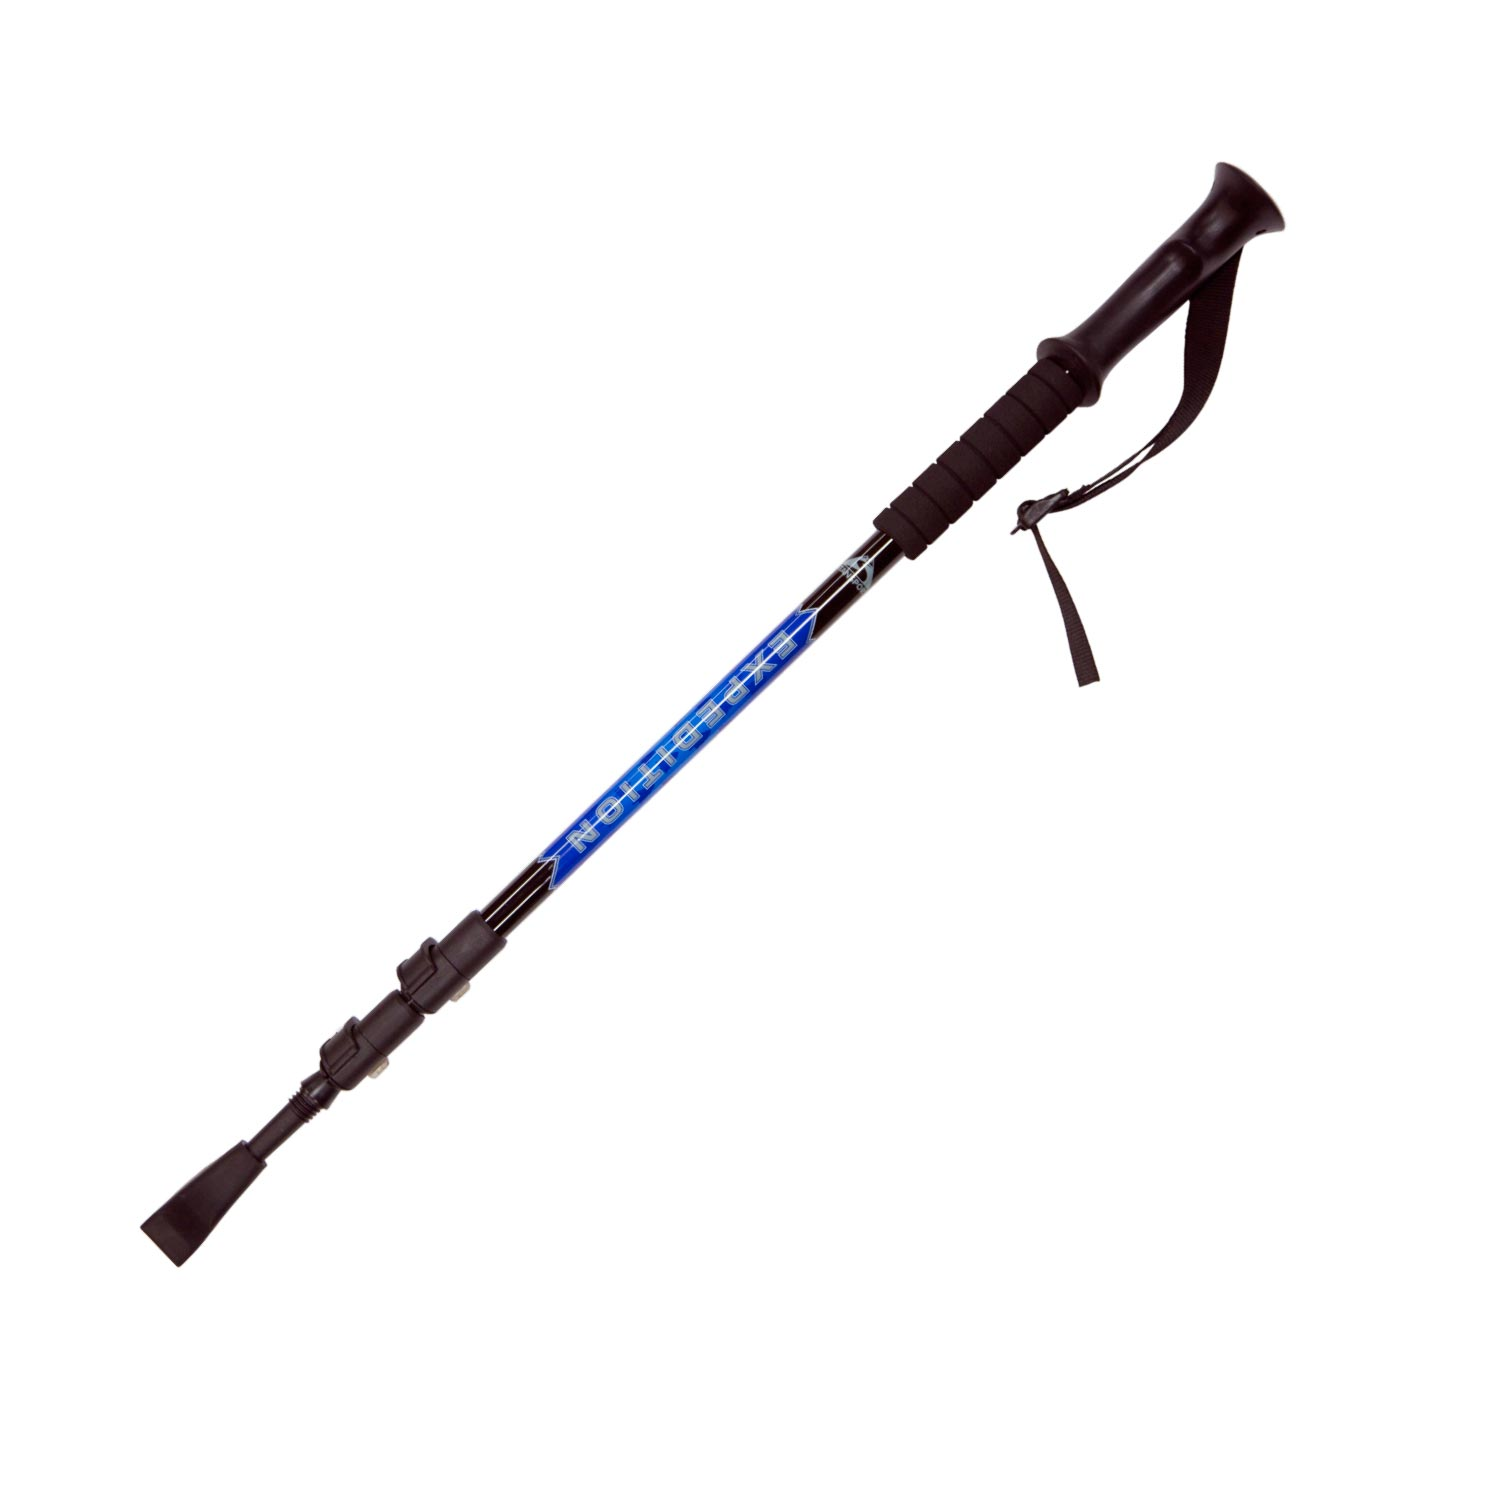 Stansport Expediton Trekking Poles Single by Stansport